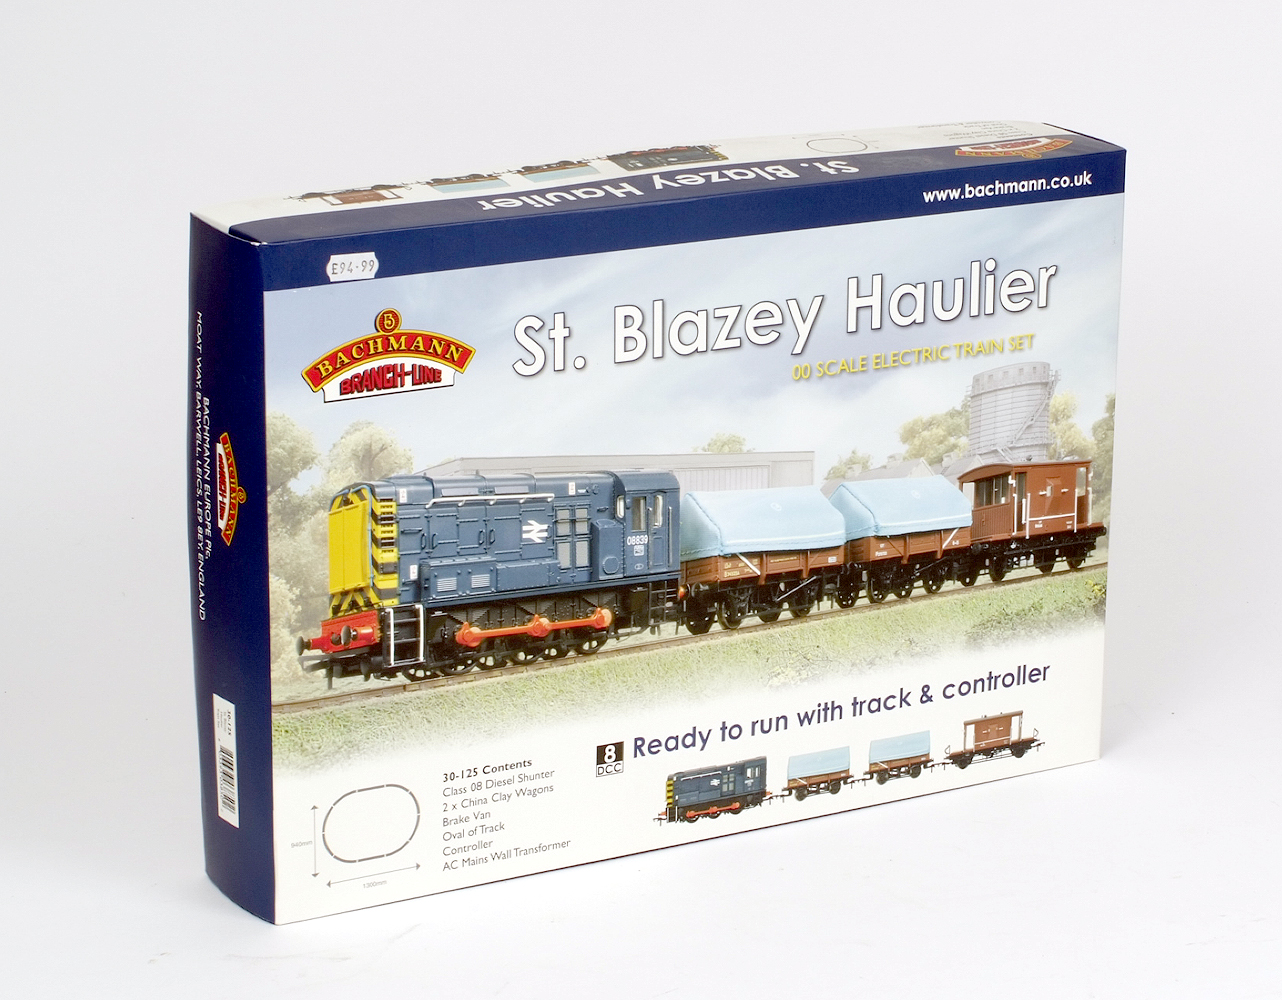 Lot 51 - OO gauge. Bachmann 30-125 St.